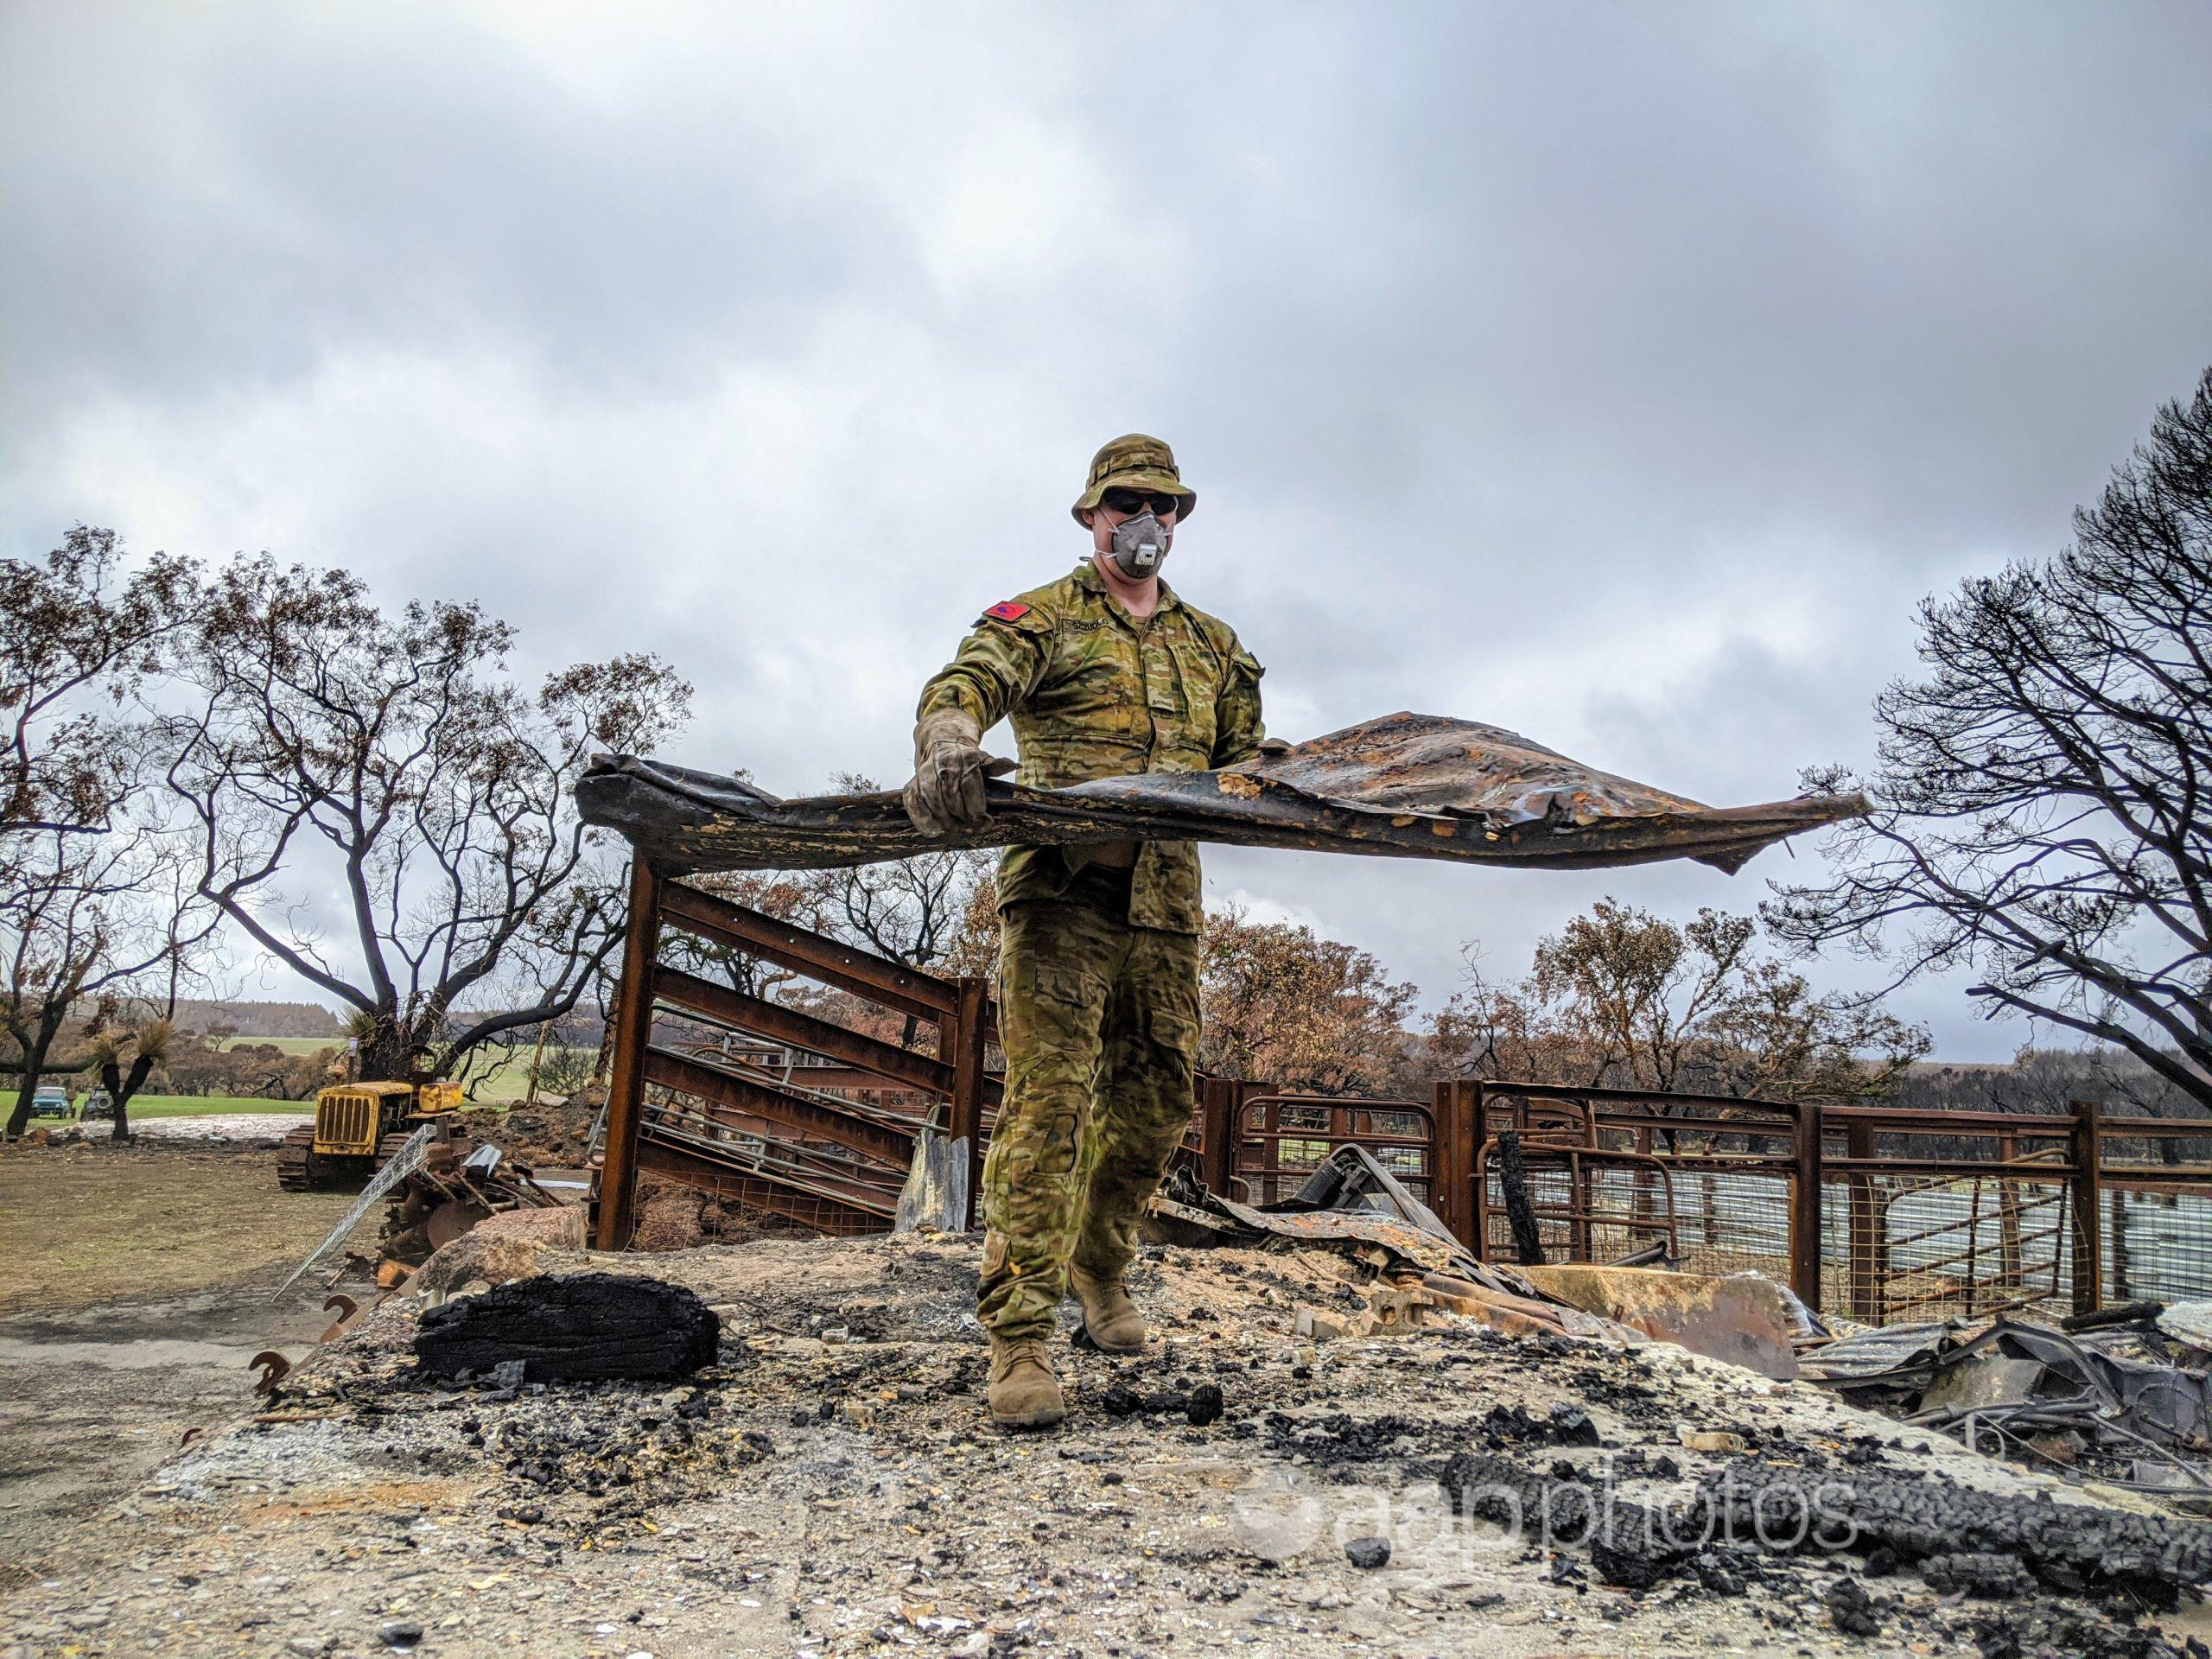 An soldier assisting with a clean-up after fires on Kangaroo Island.